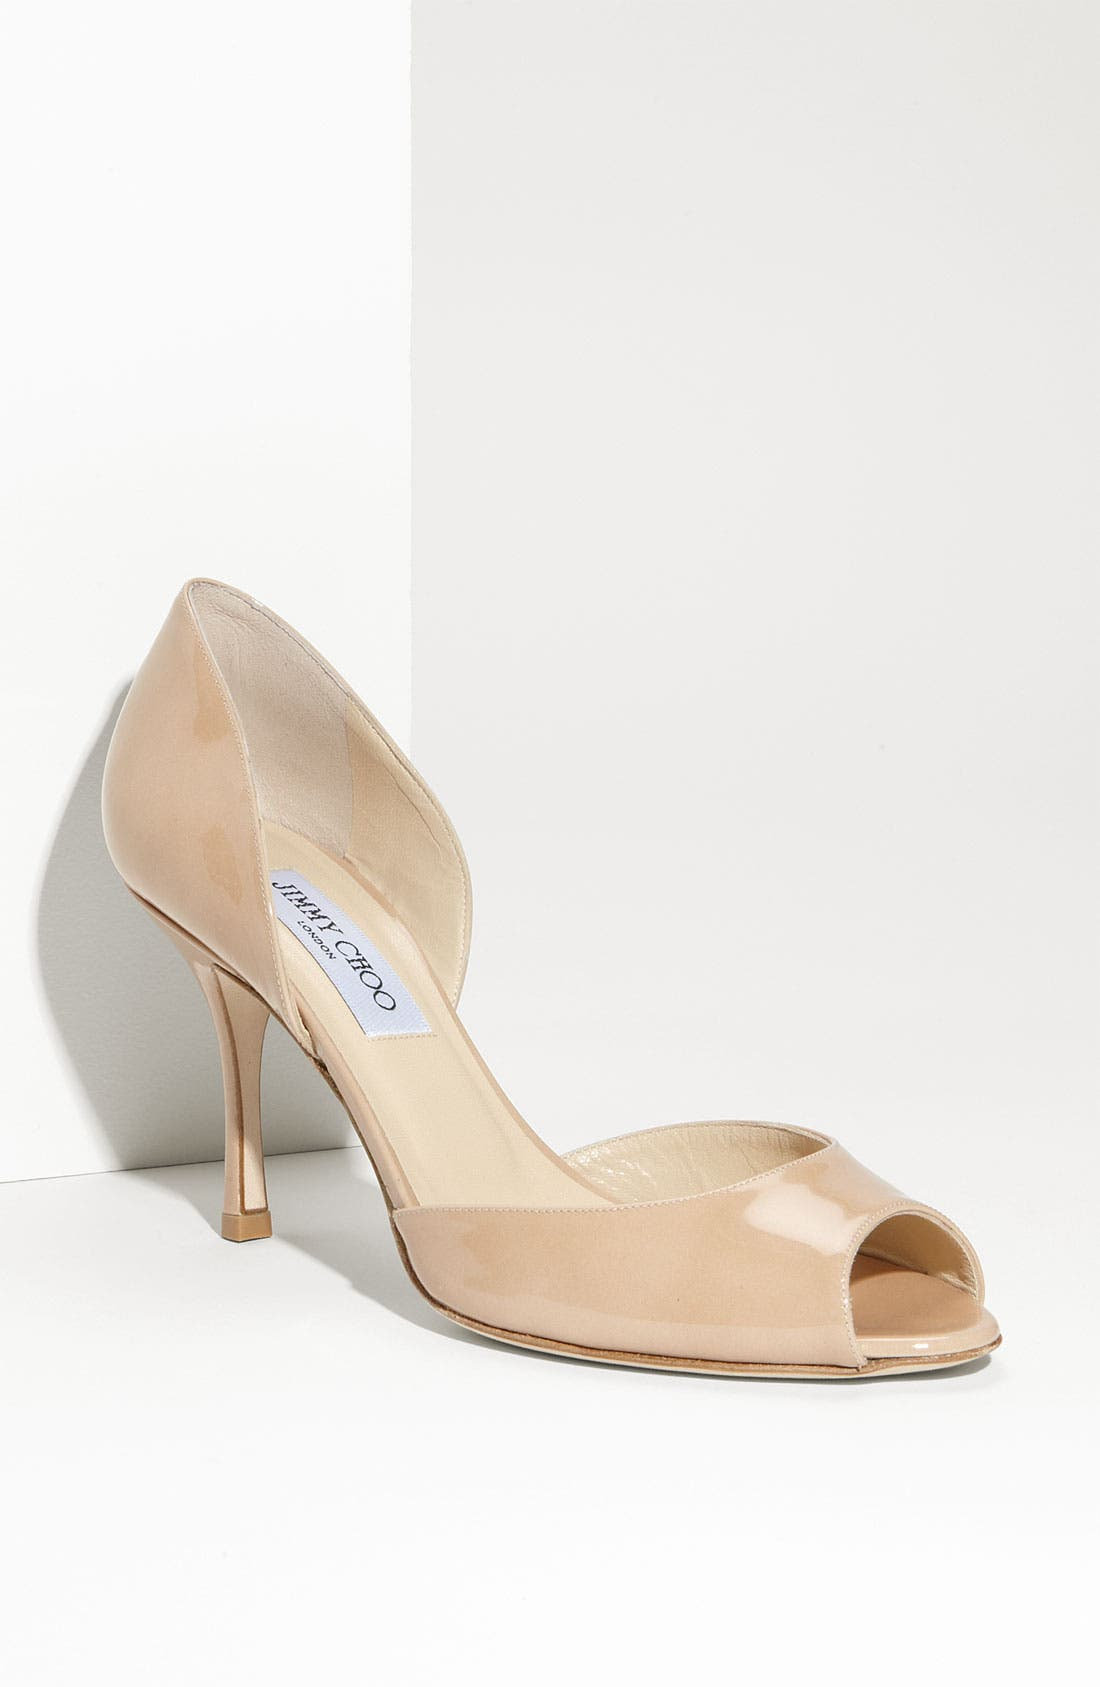 Main Image - Jimmy Choo 'Logan' d'Orsay Pump